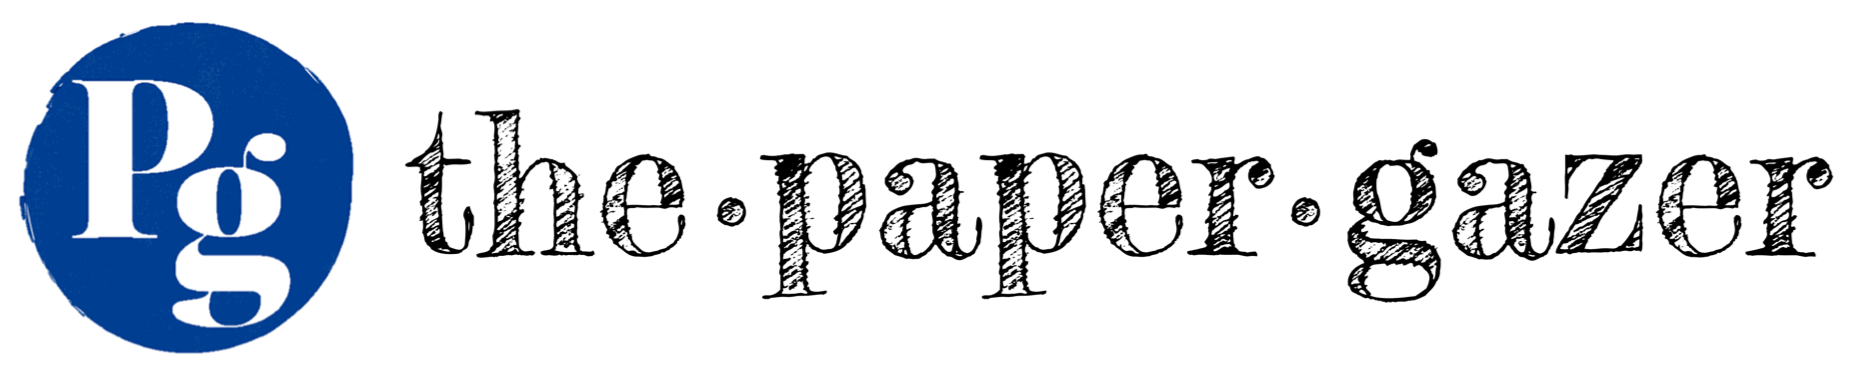 The Paper Gazer